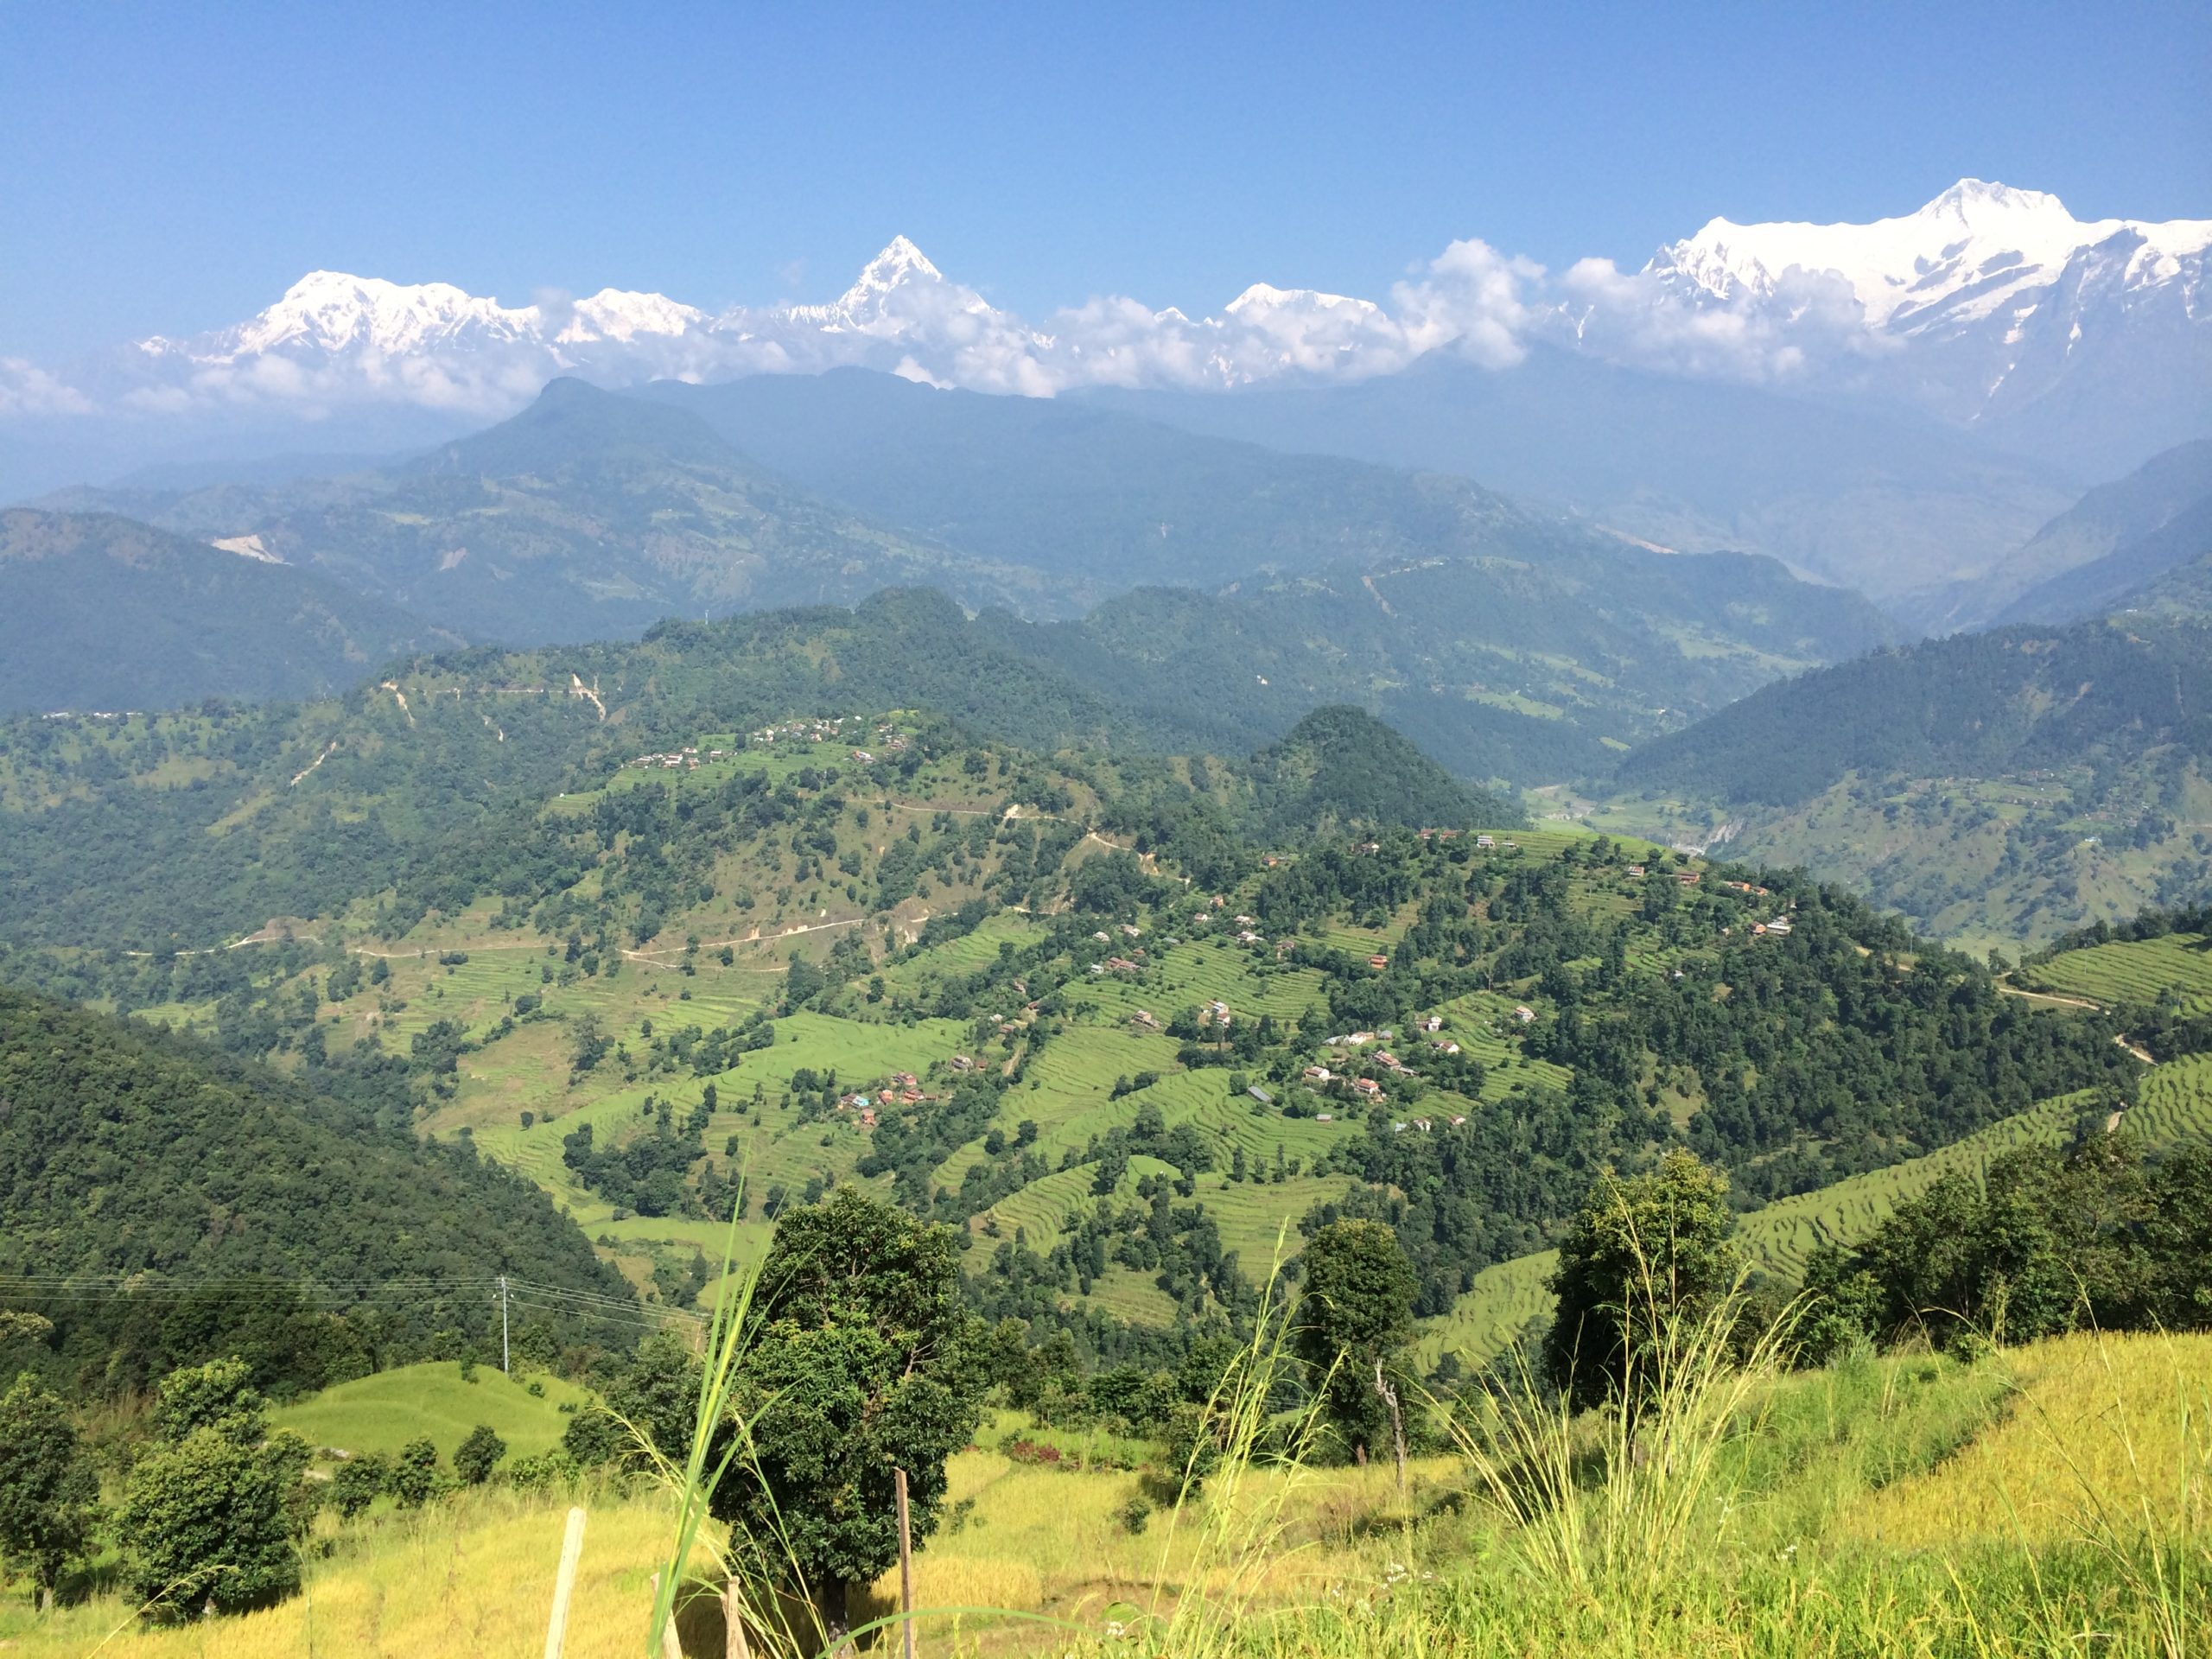 looking down into the Pokhara valley over terraced rice fields and trees